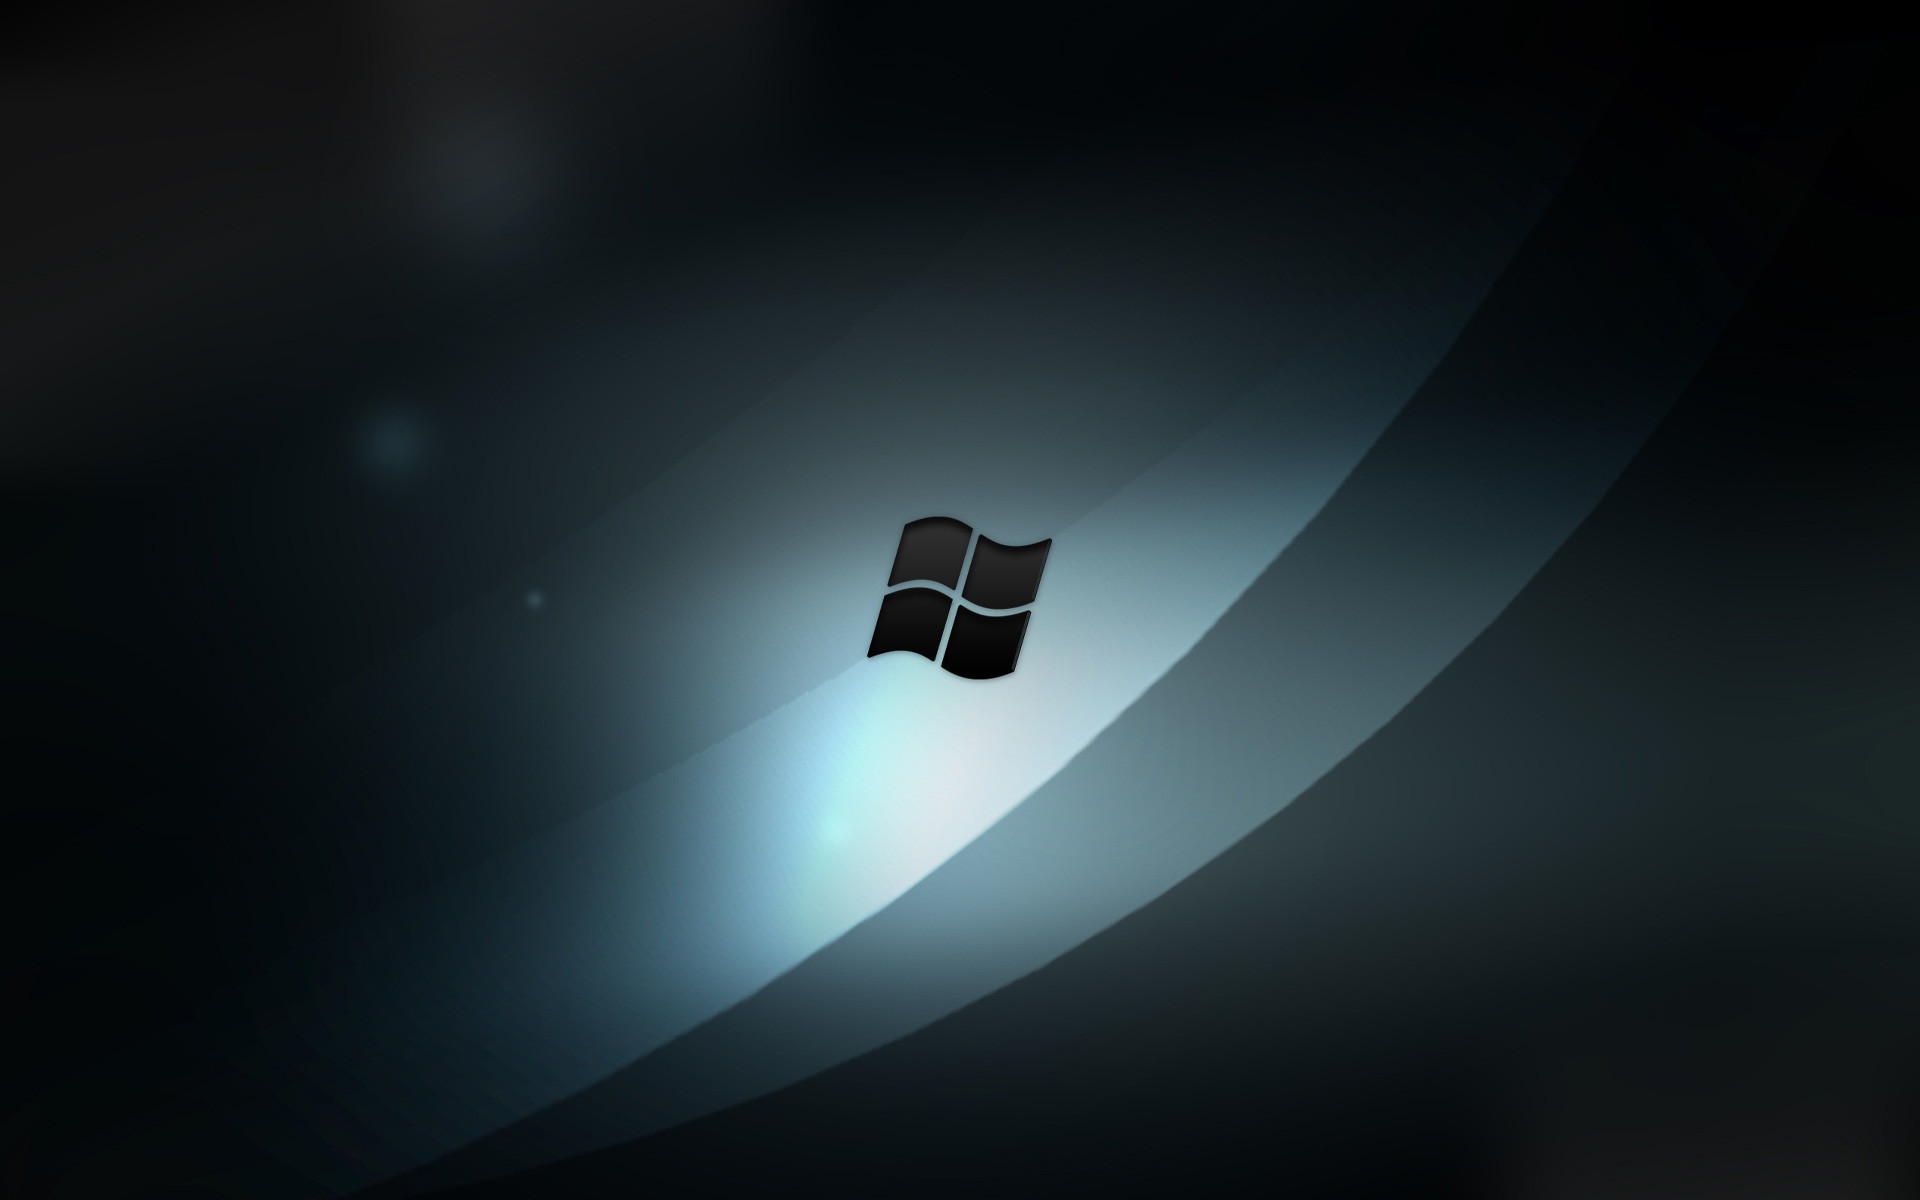 Windows Wallpapers for Android HD Wallpapers